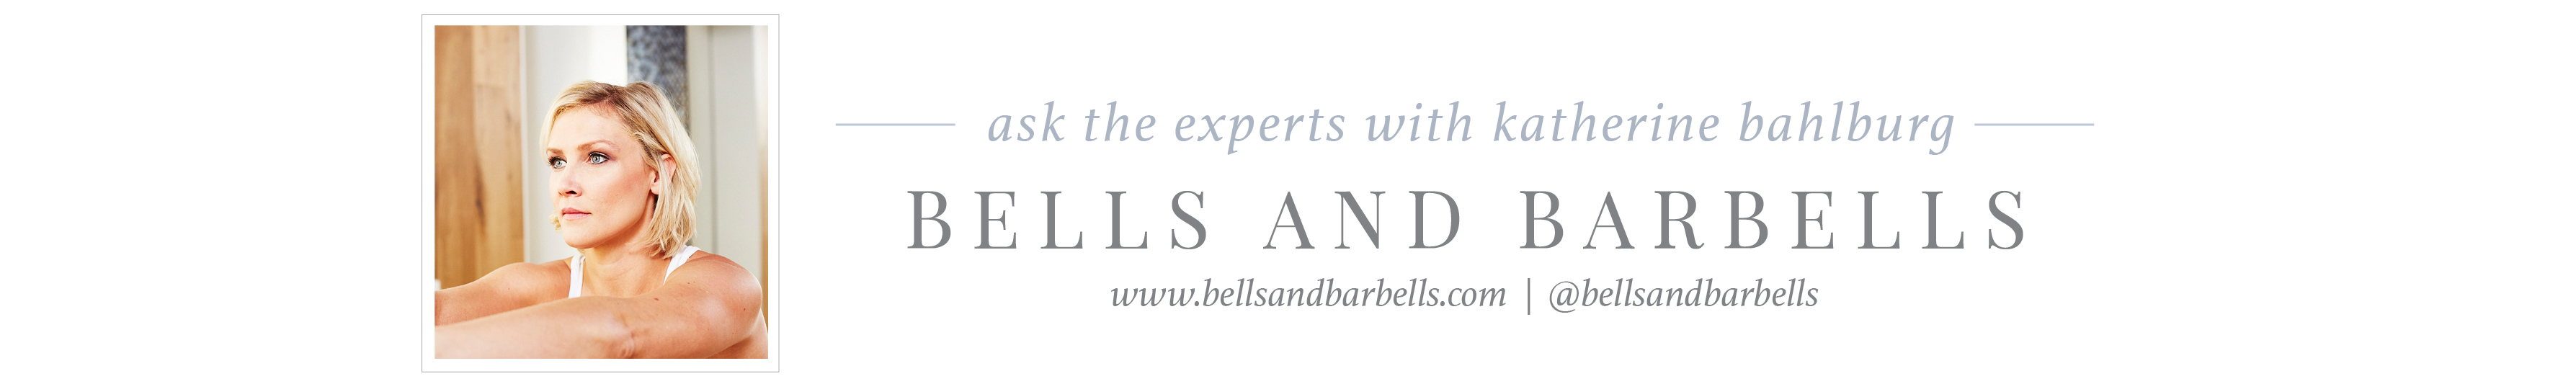 Bells and Barbells wedding fitness